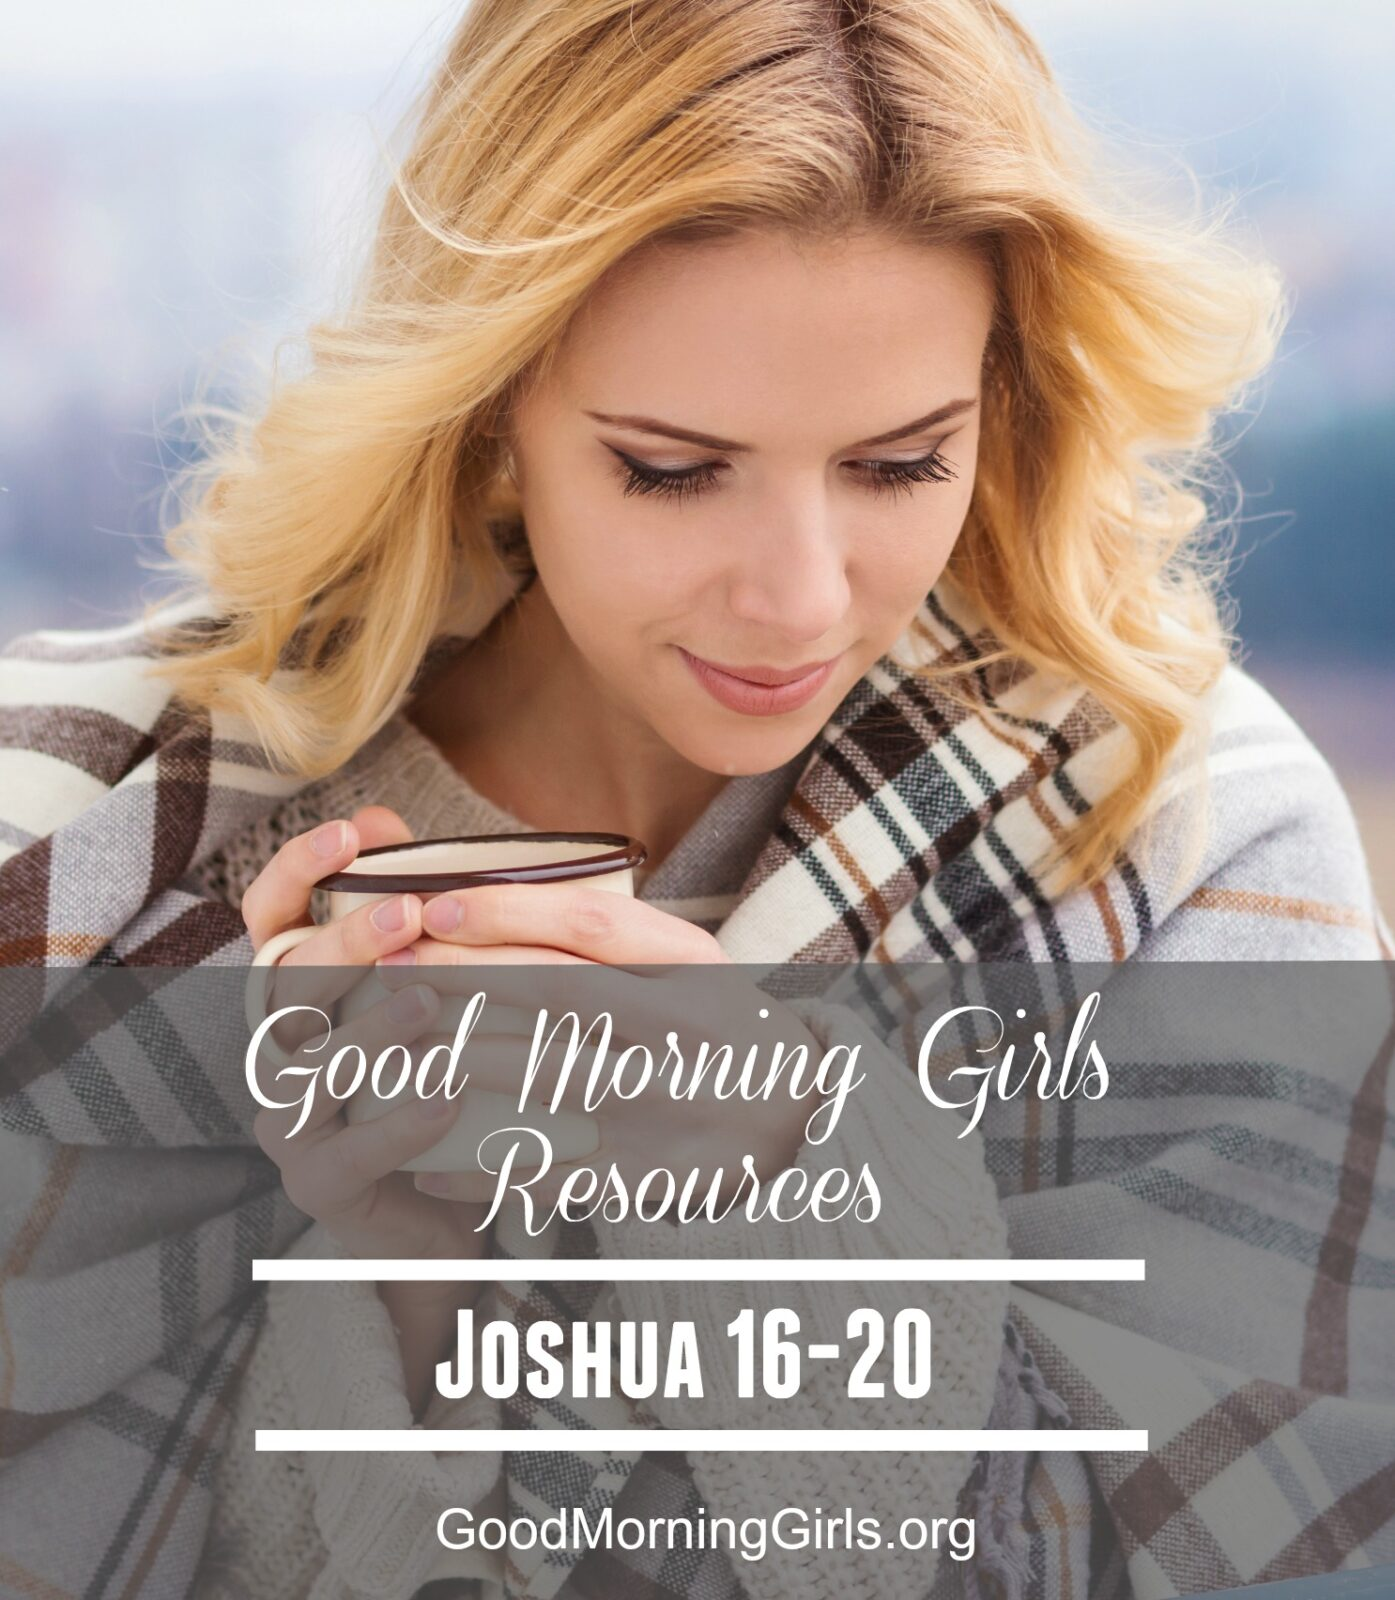 https://i1.wp.com/womenlivingwell.org/wp-content/uploads/2016/09/Joshua-16-20.jpg